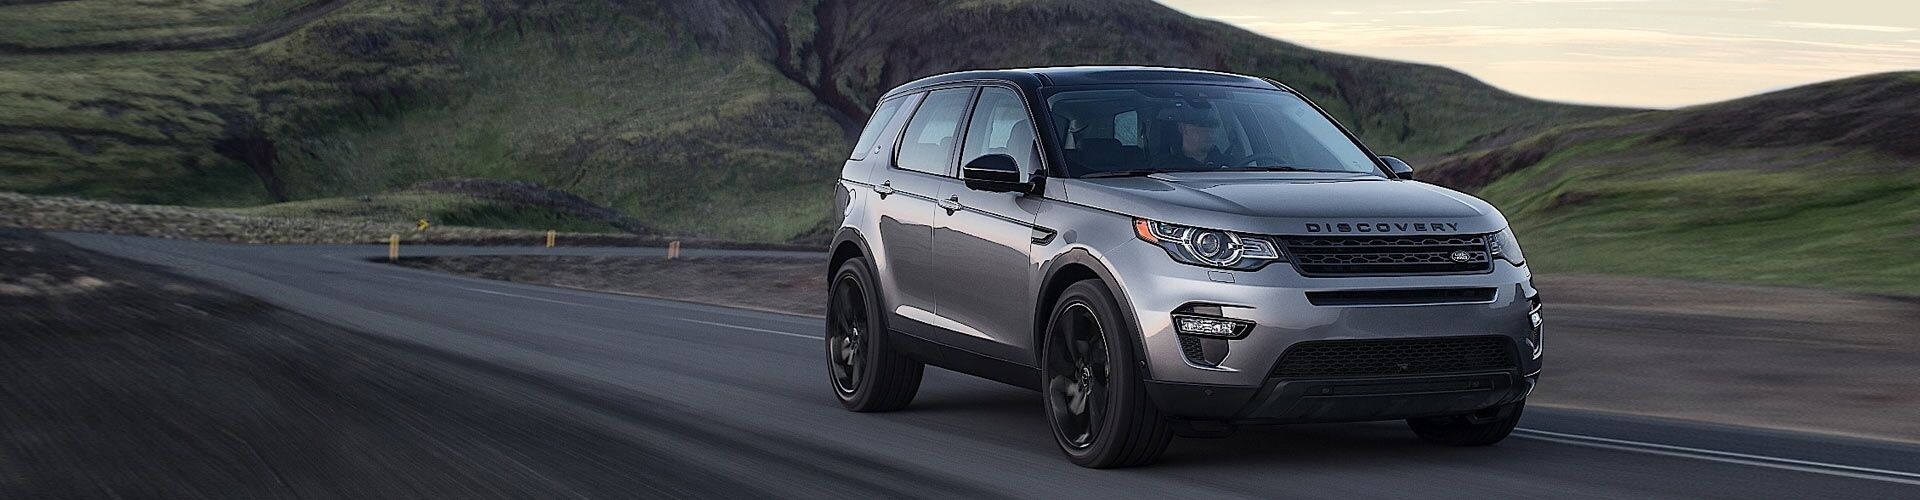 New Discovery Sport at Land Rover Merriam